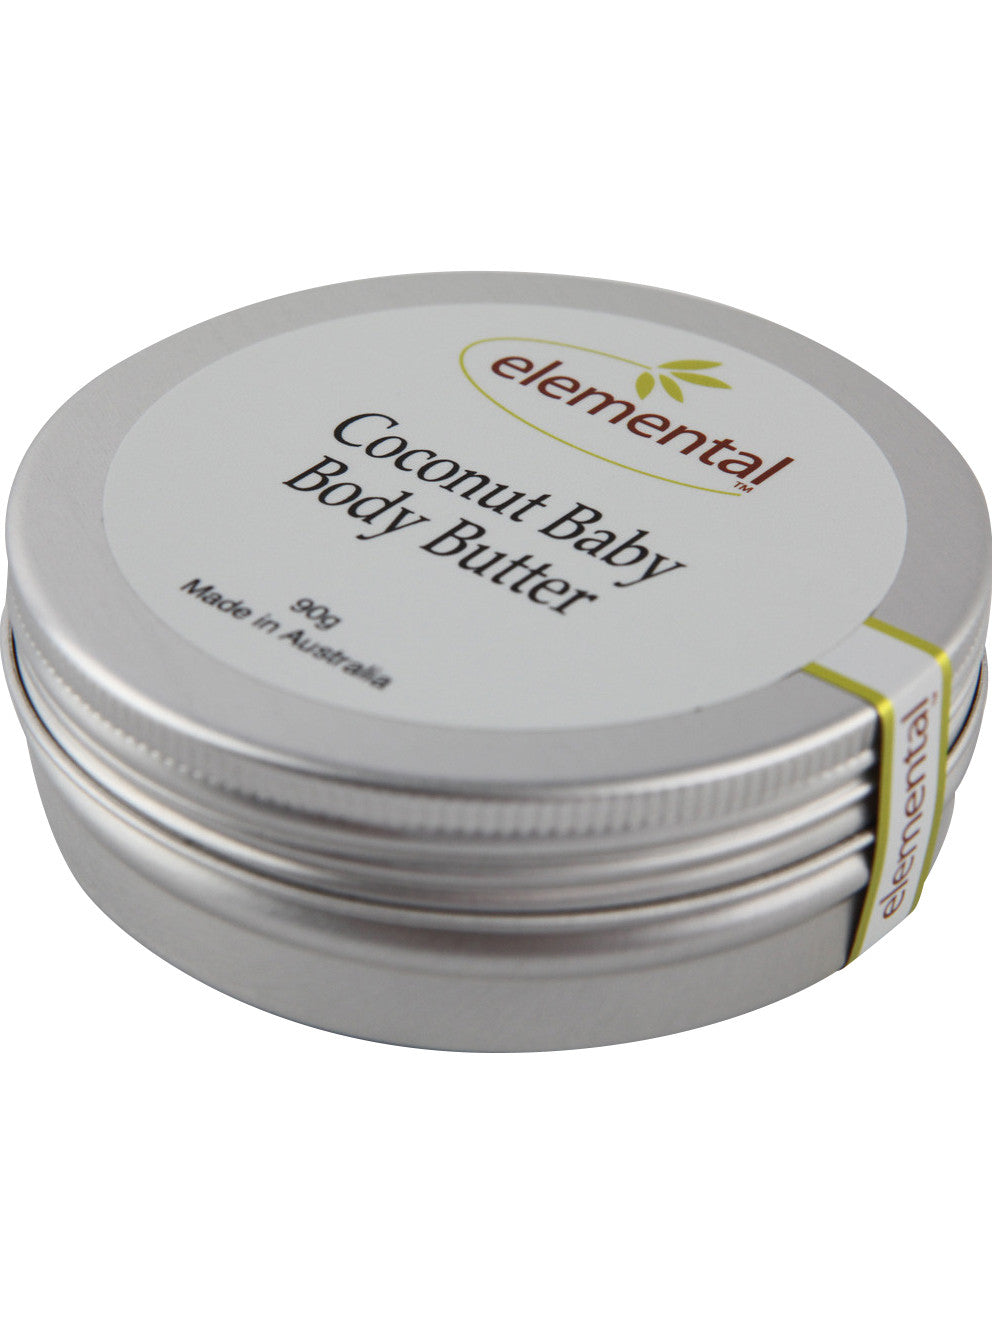 Coconut Baby Body Butter by Elemental Organic Skin Care